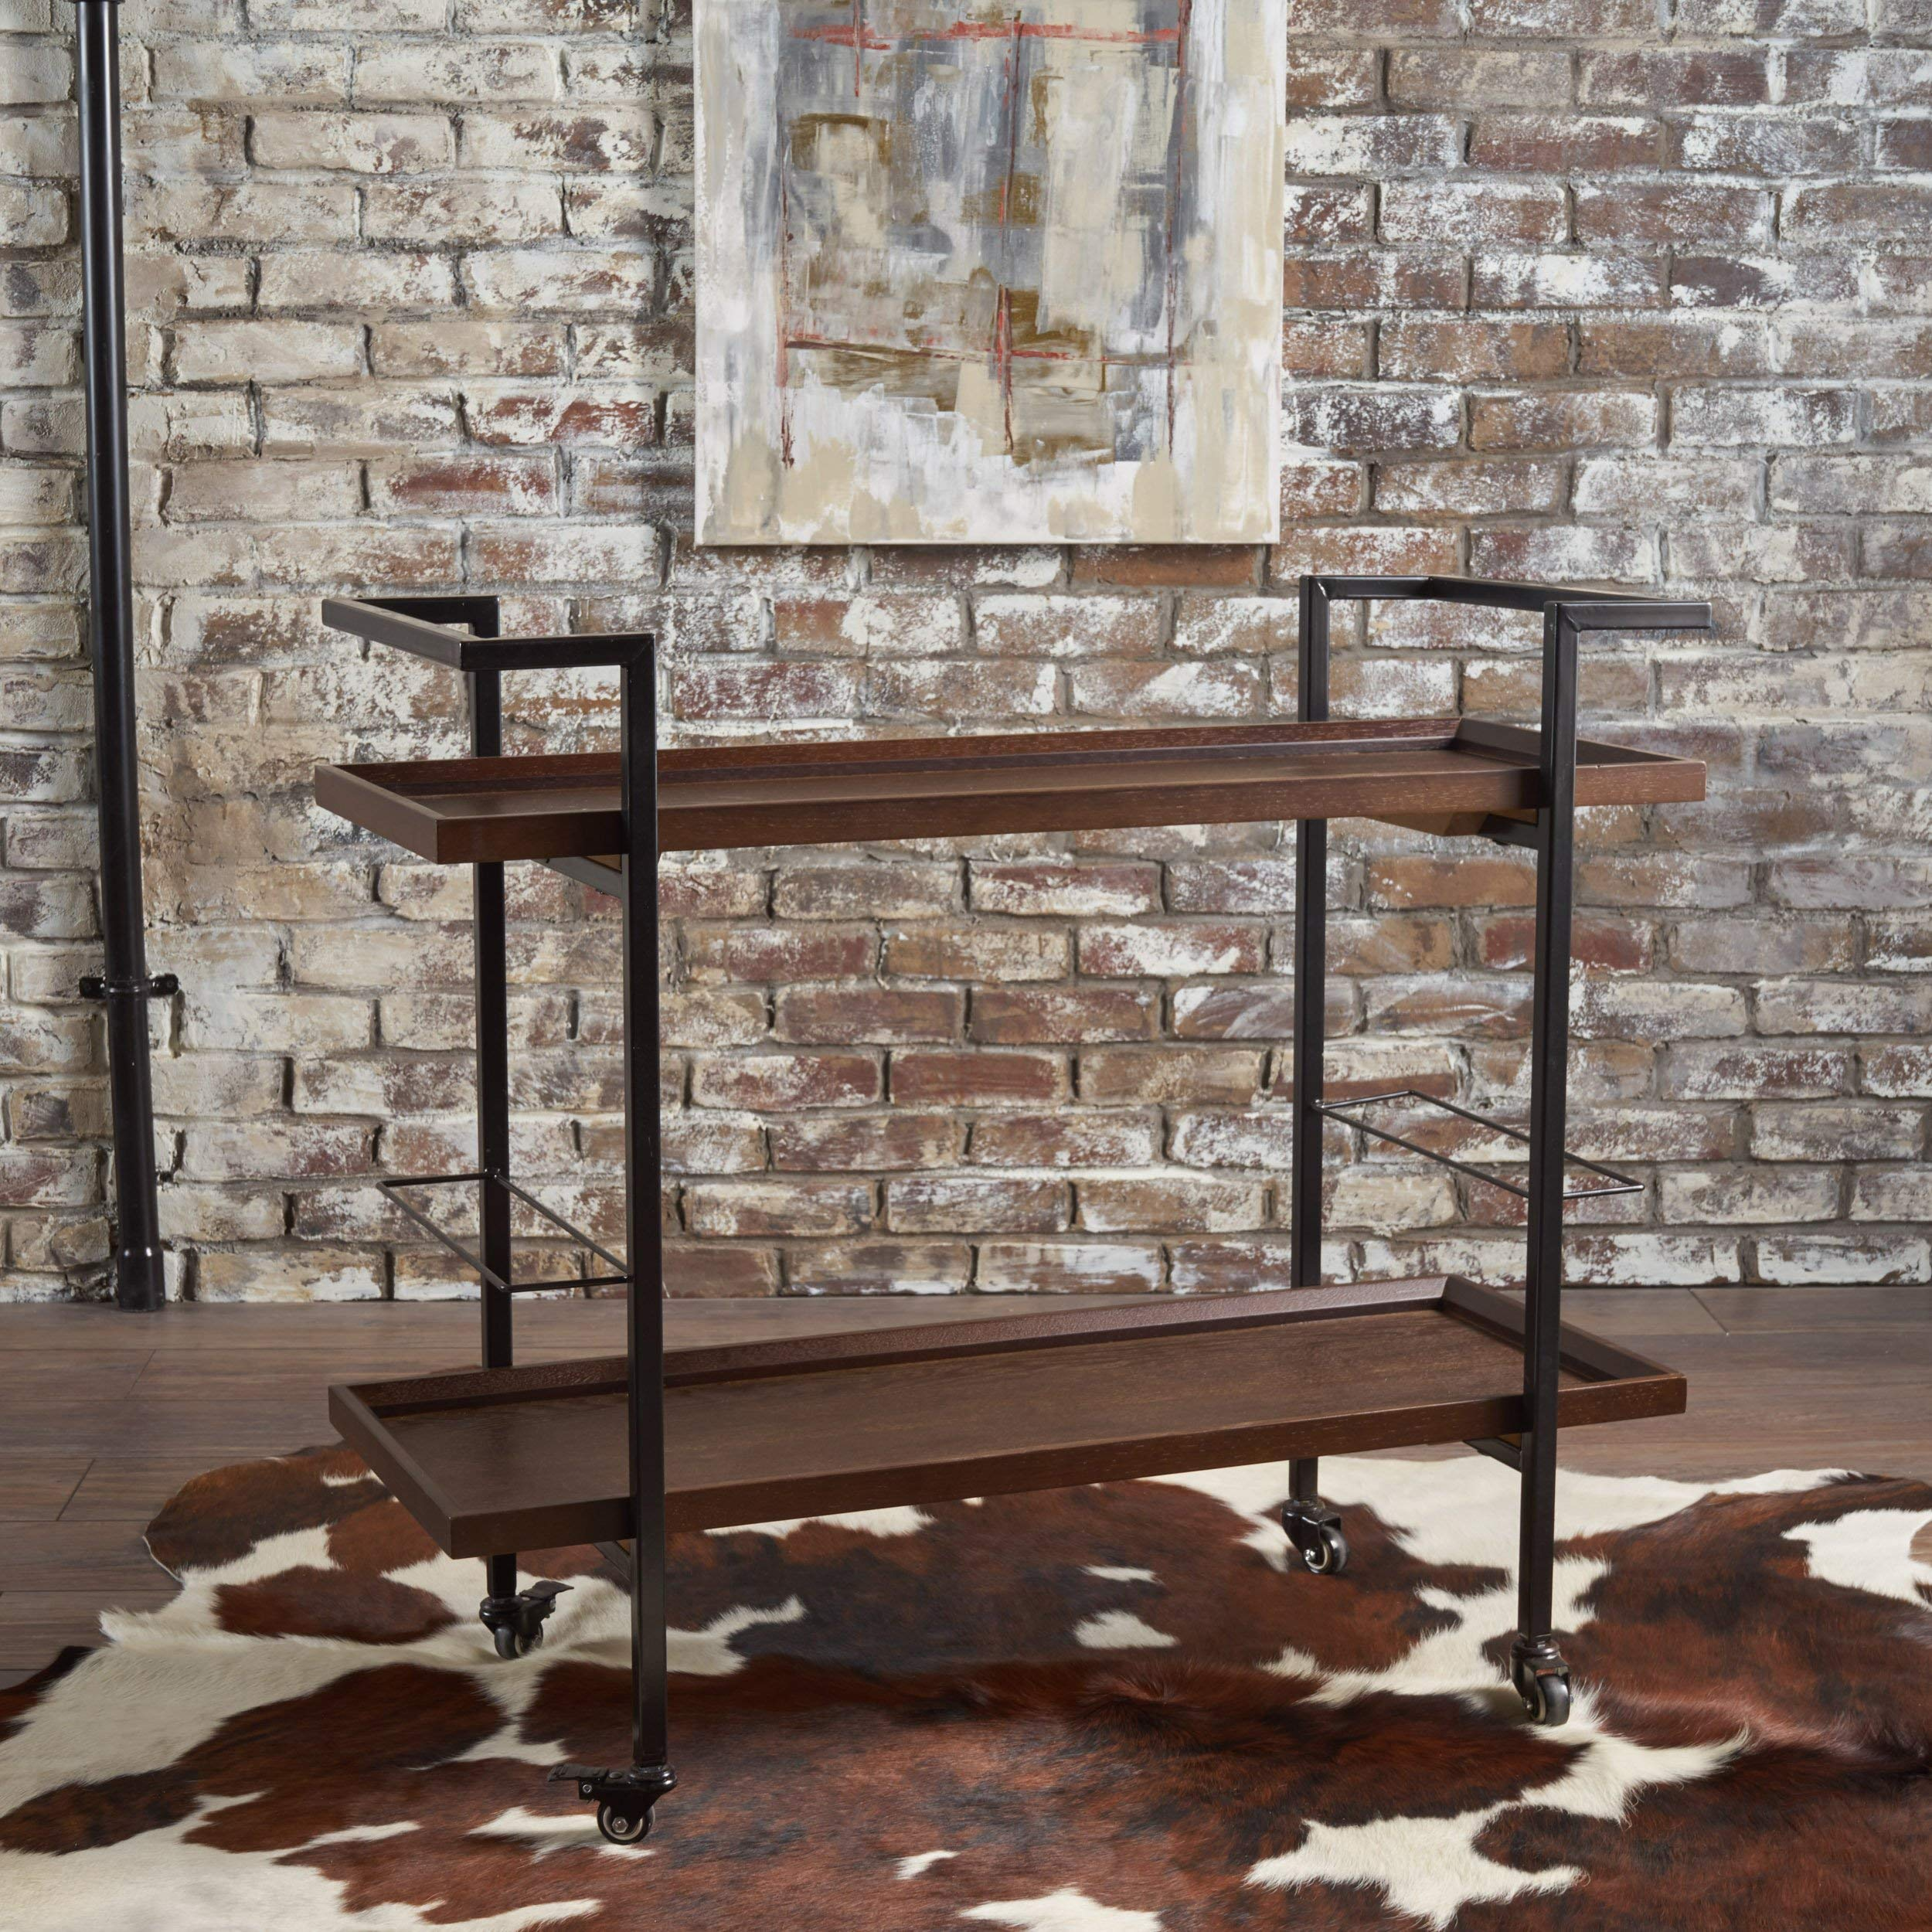 Christopher Knight Home Gerard Industrial Dark Walnut Finished Wooden Bar Cart by Christopher Knight Home